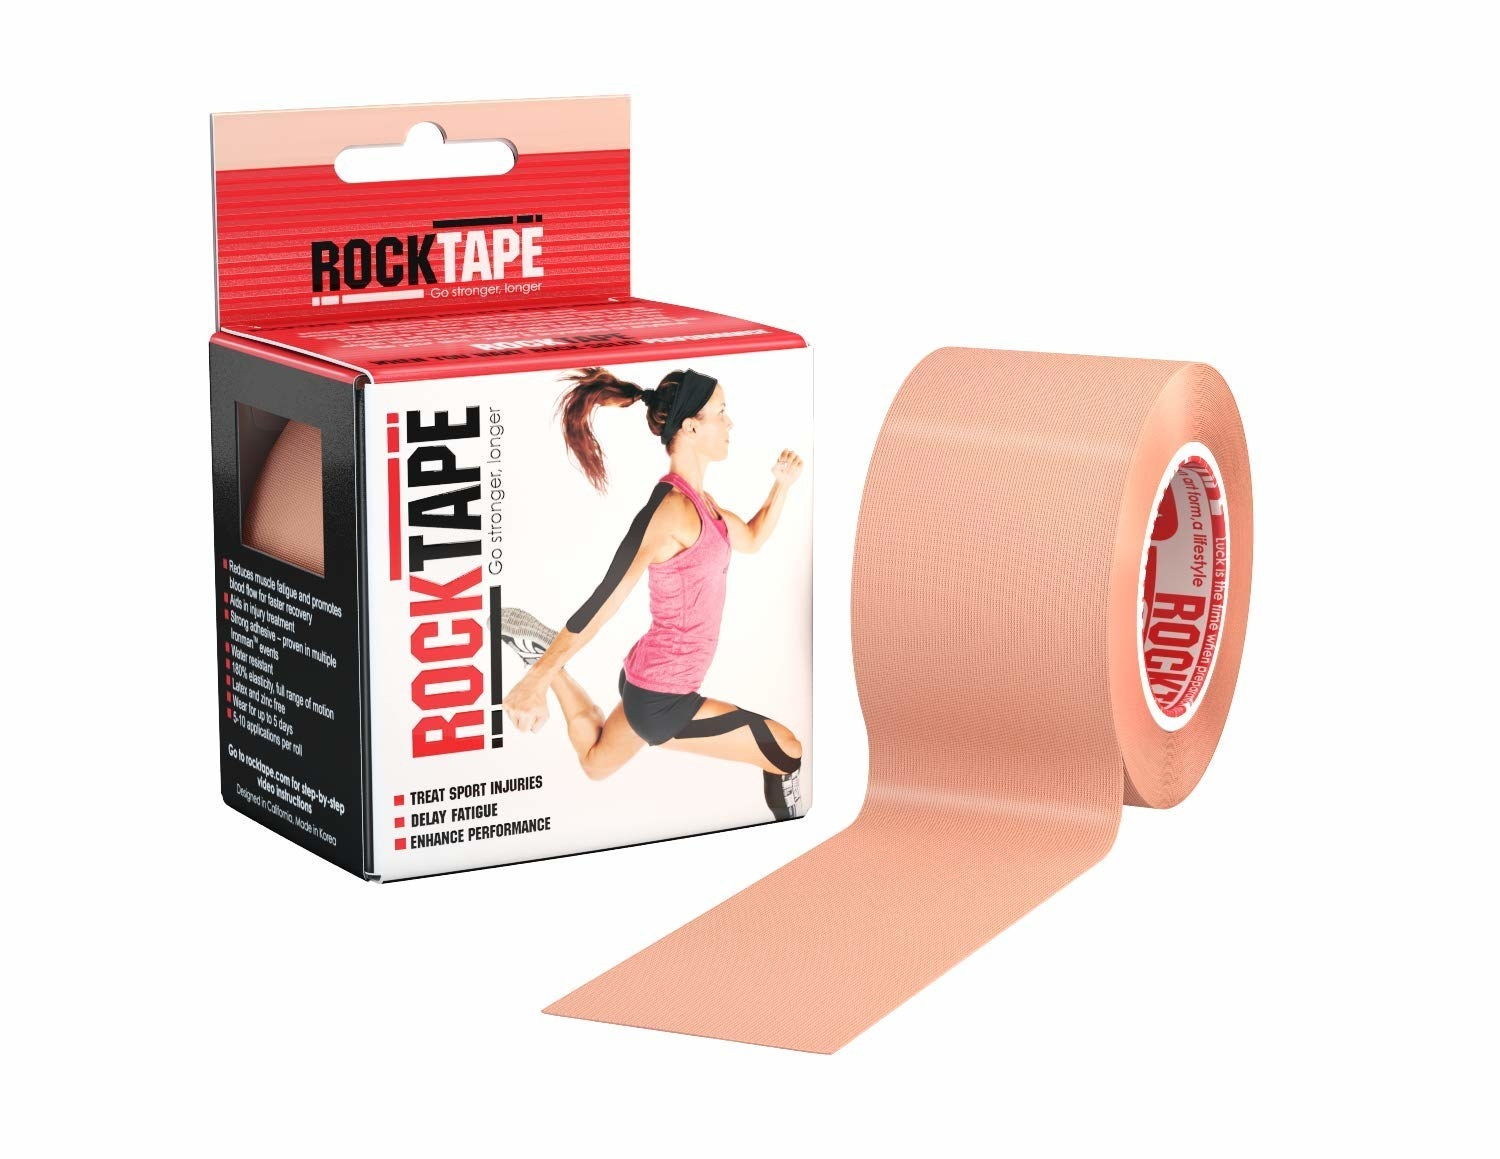 A roll of the tape in nude